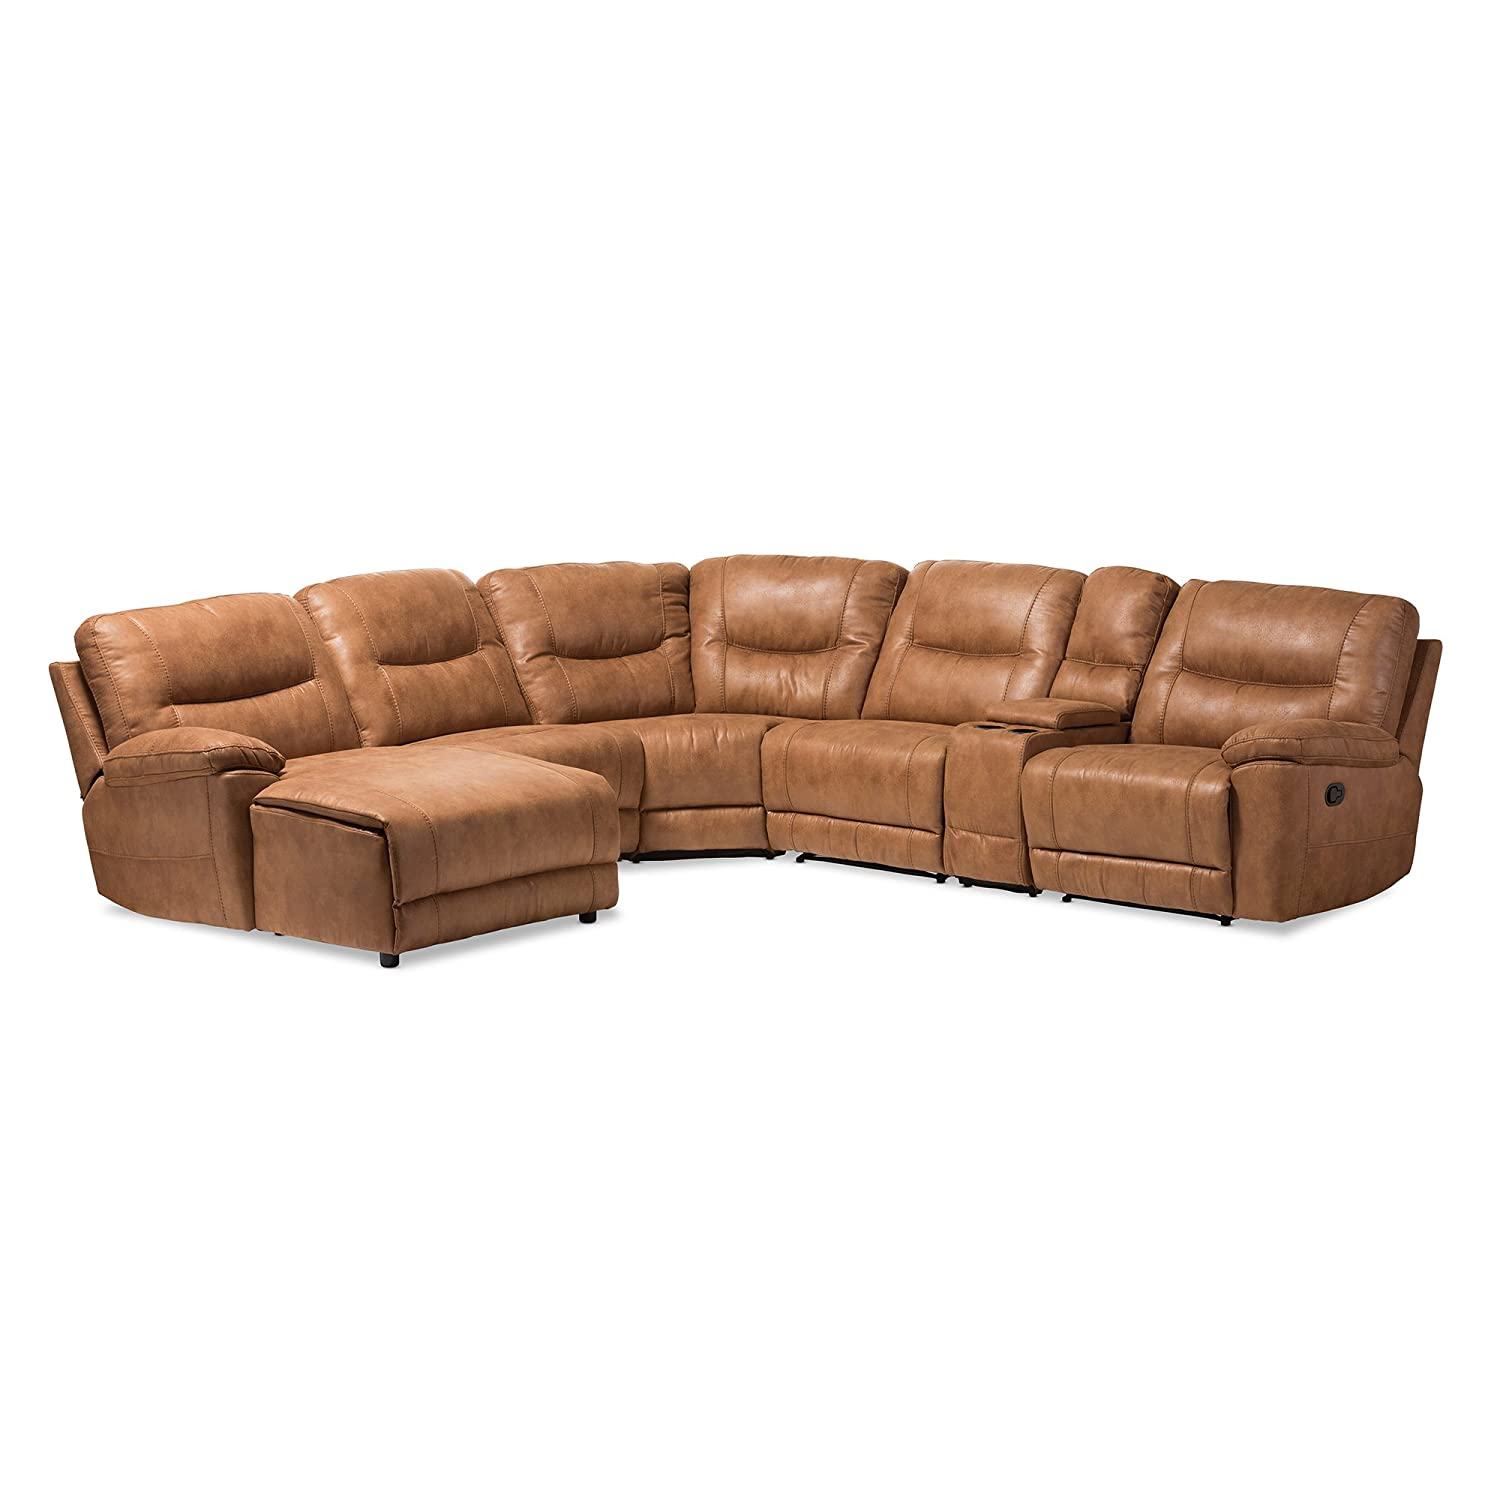 Awesome Baxton Studio 6 Piece Nadeen Palomino Suede Sectional With Recliners Corner Lounge Suite Light Brown Andrewgaddart Wooden Chair Designs For Living Room Andrewgaddartcom